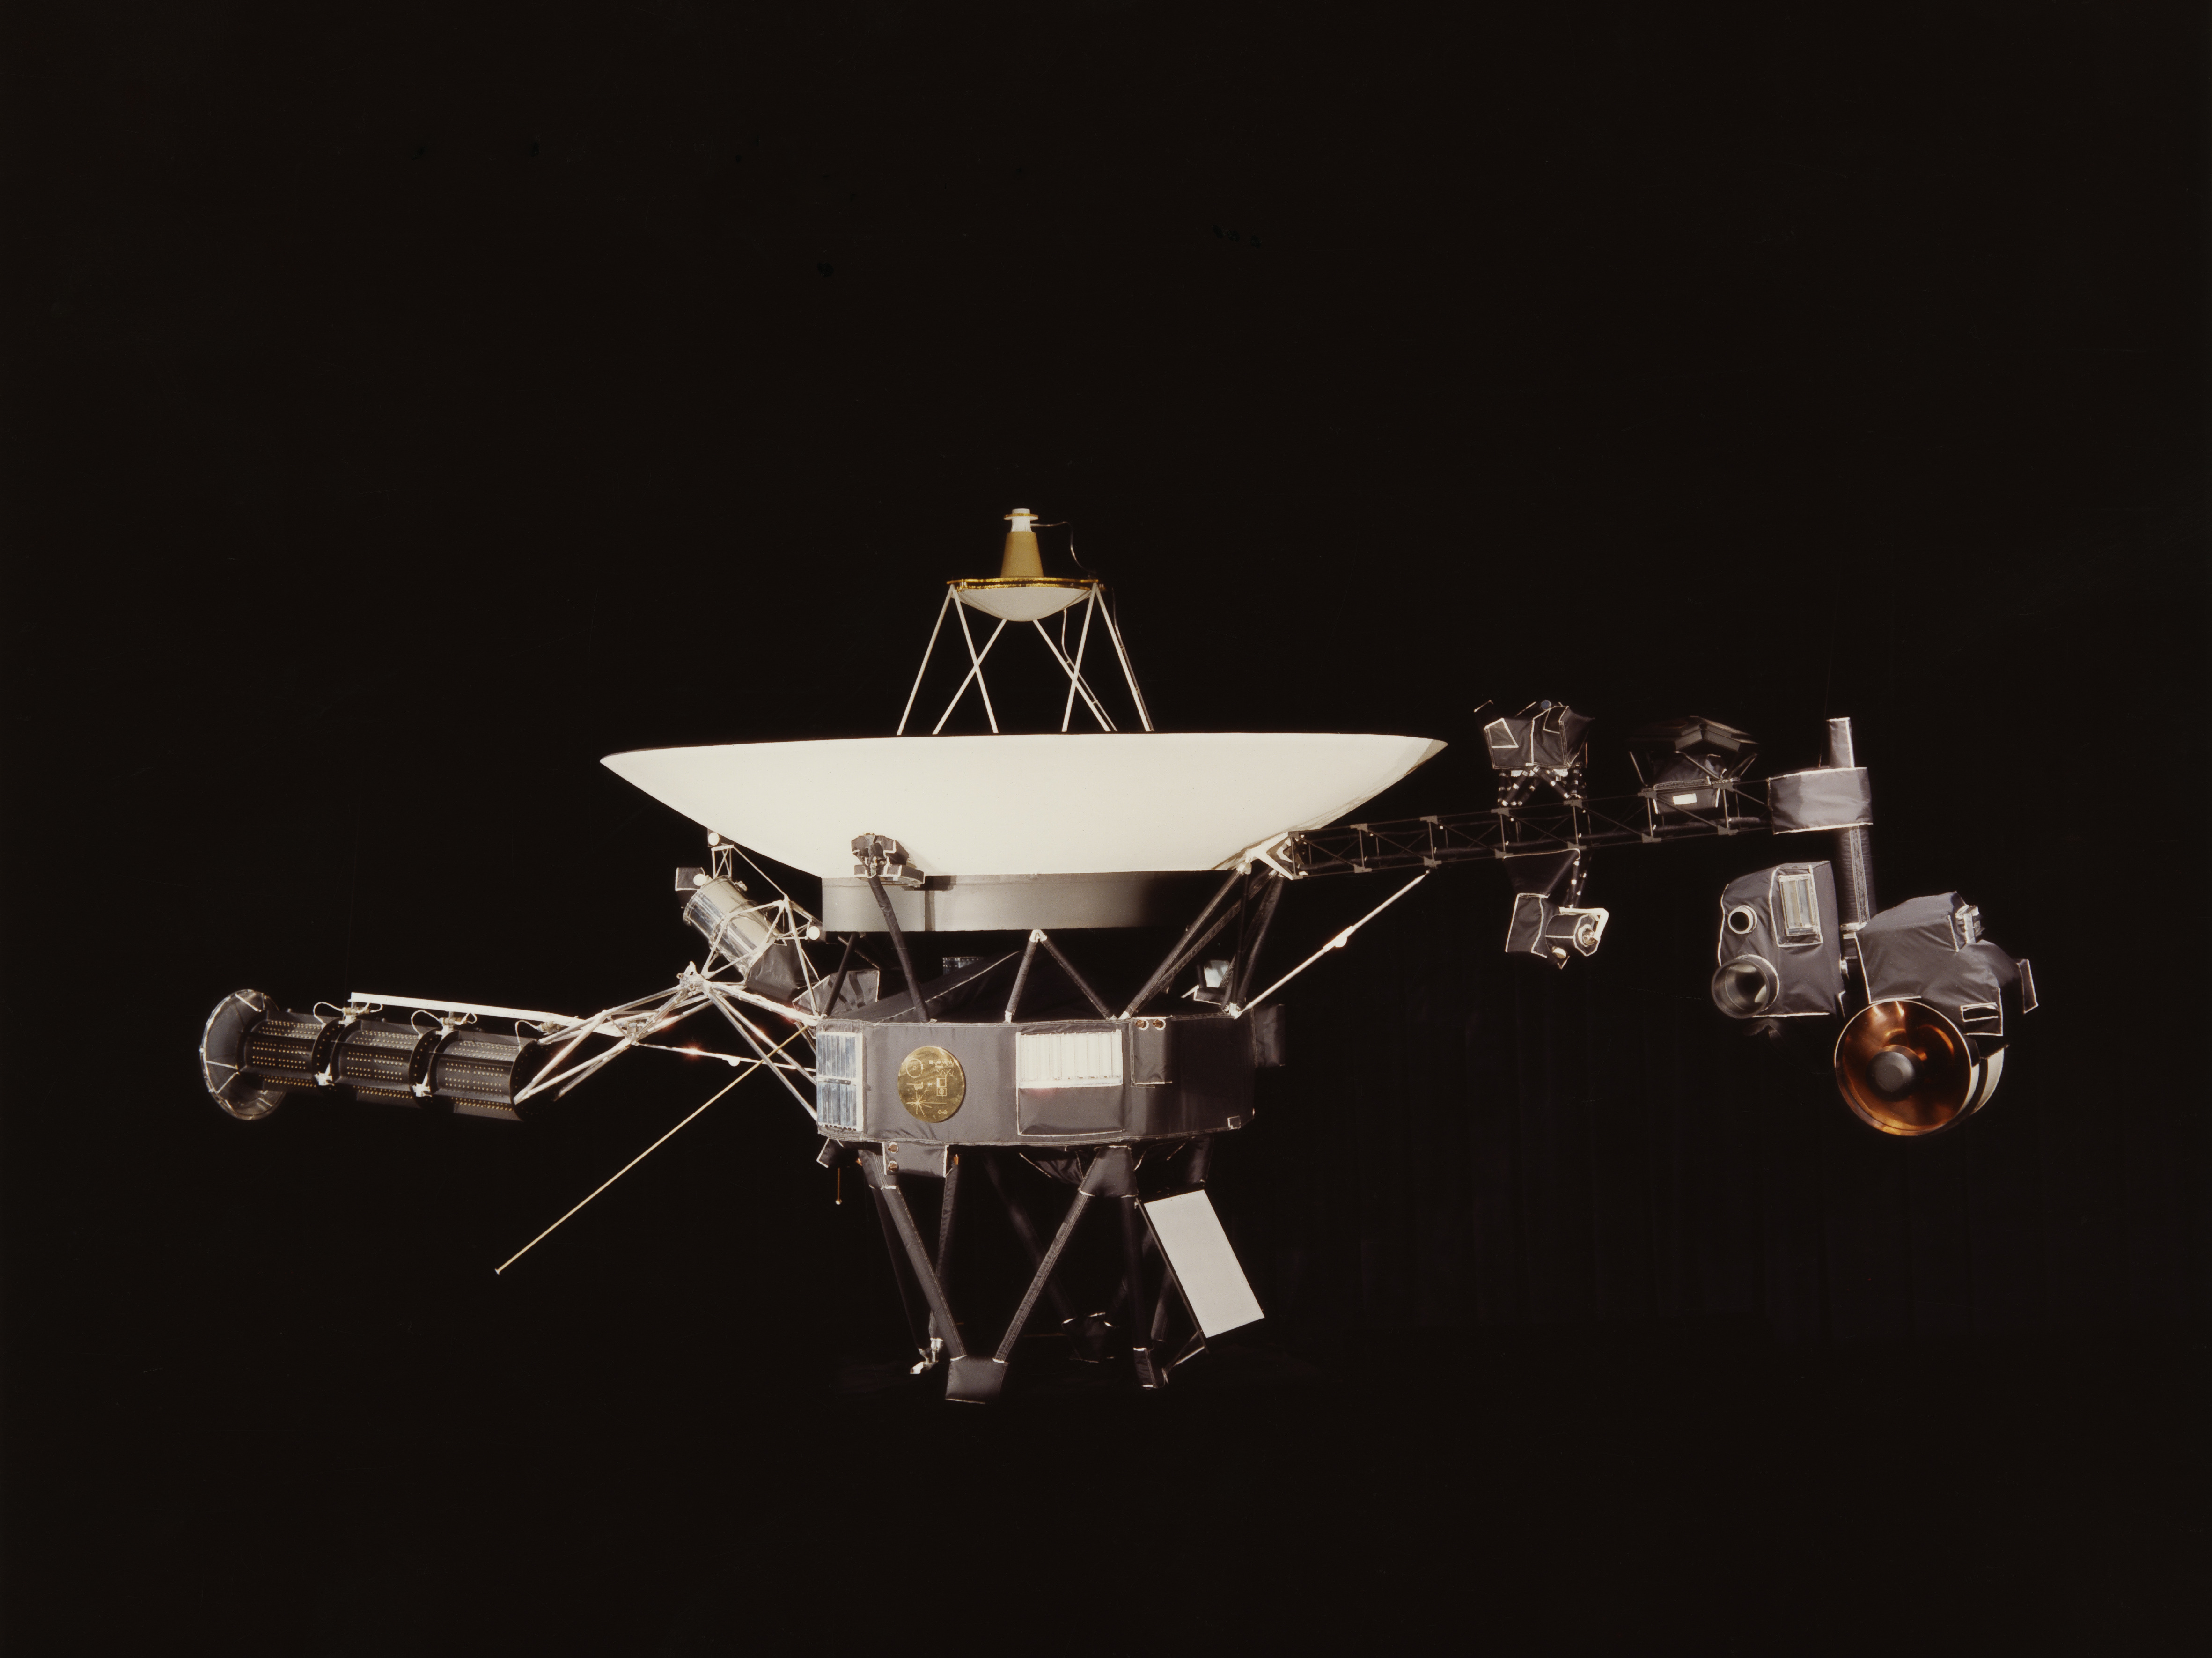 Voyager Has Left The Solar System (This Time For Real ...